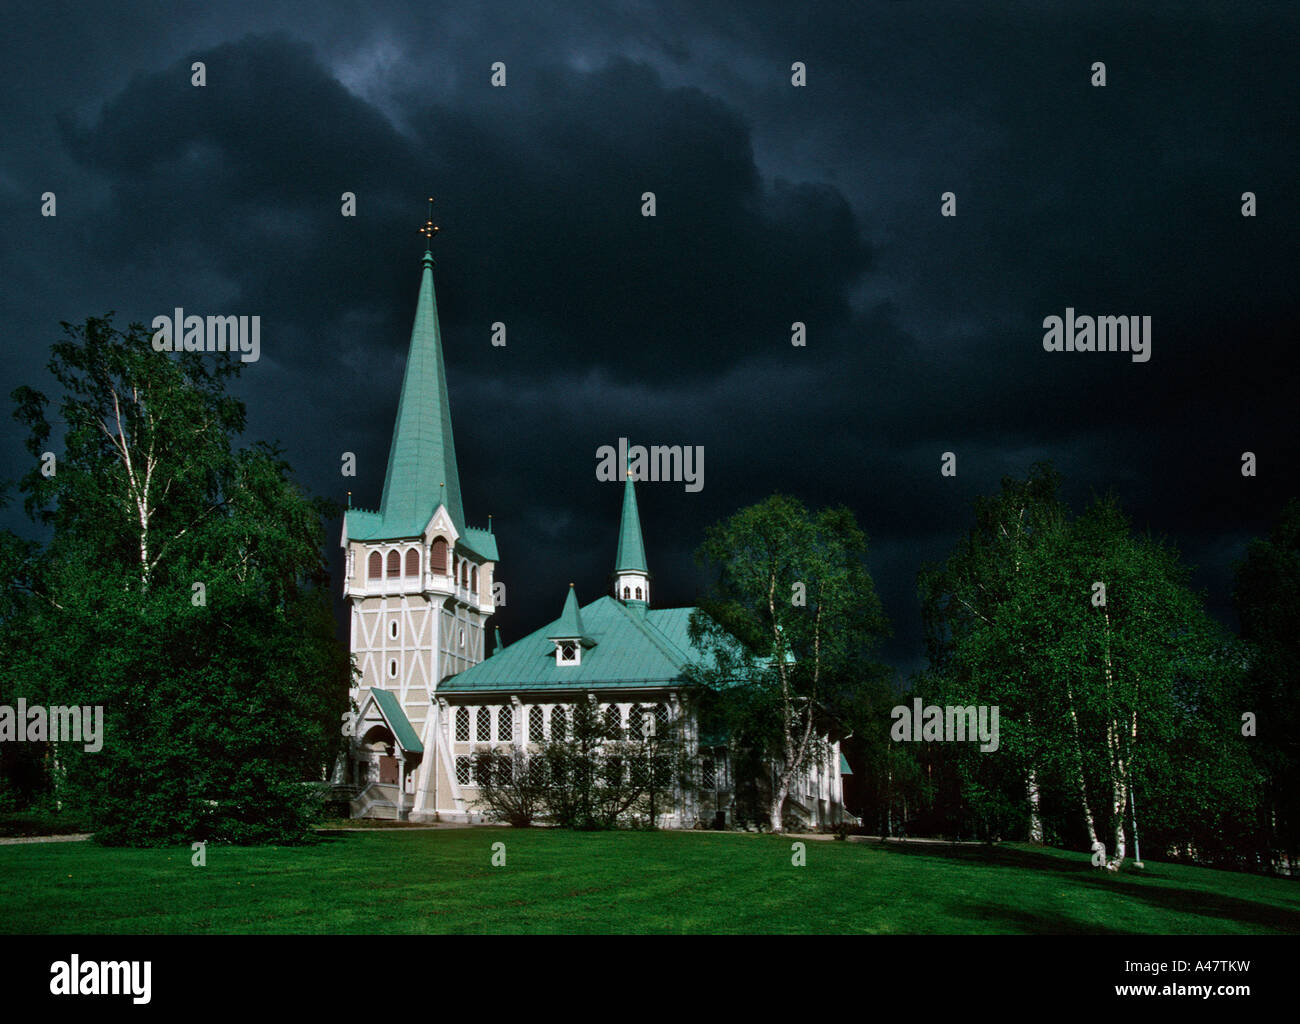 dramatic-black-clouds-gather-behind-a-traditional-wooden-church-in-A47TKW.jpg